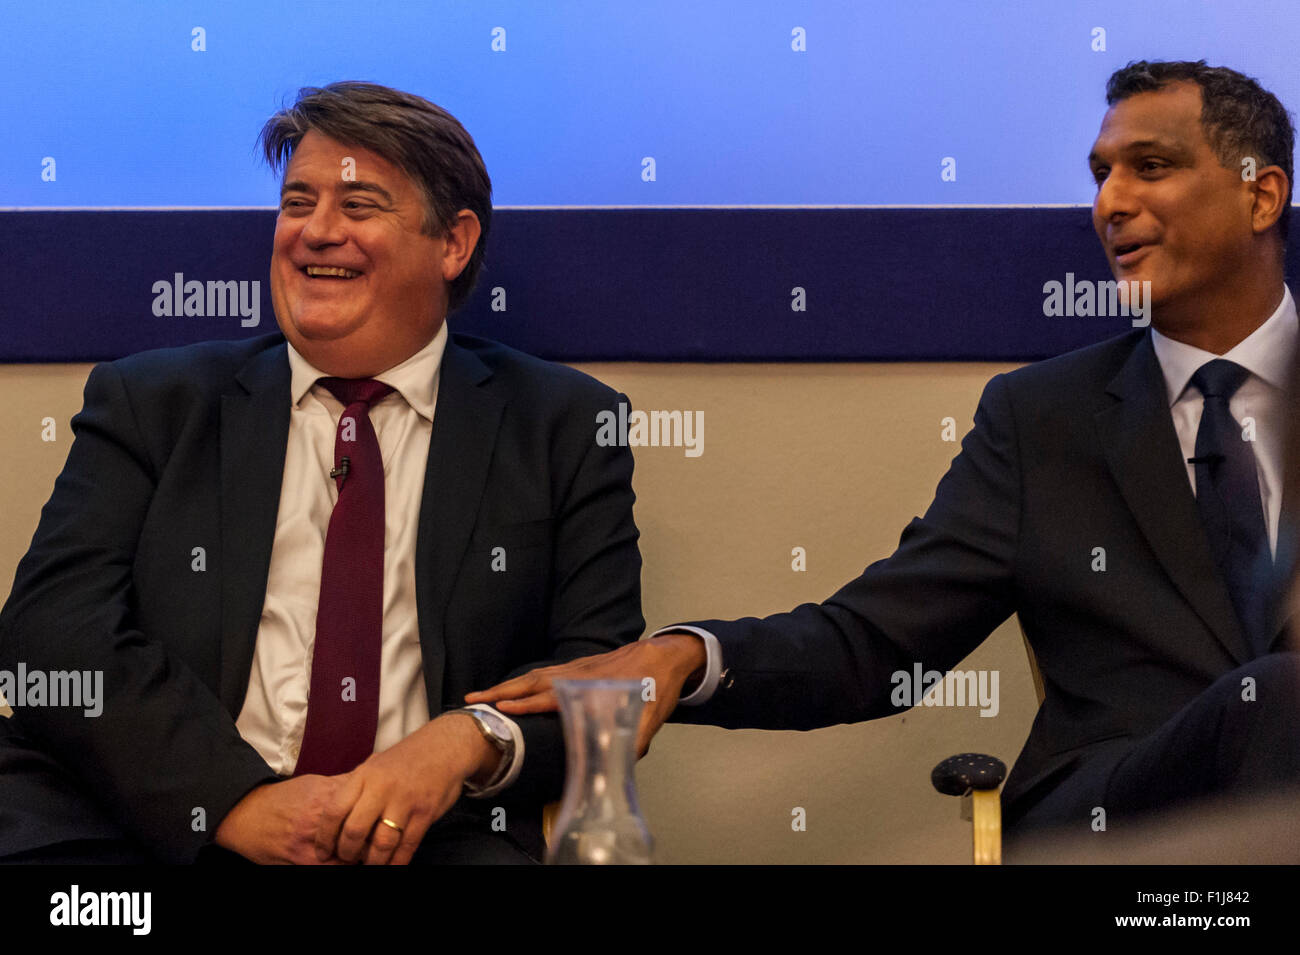 London, UK.  2 September 2015.  Stephen Greenhalgh and Syed Kamall share a joke as Centre for London and Prospect - Stock Image